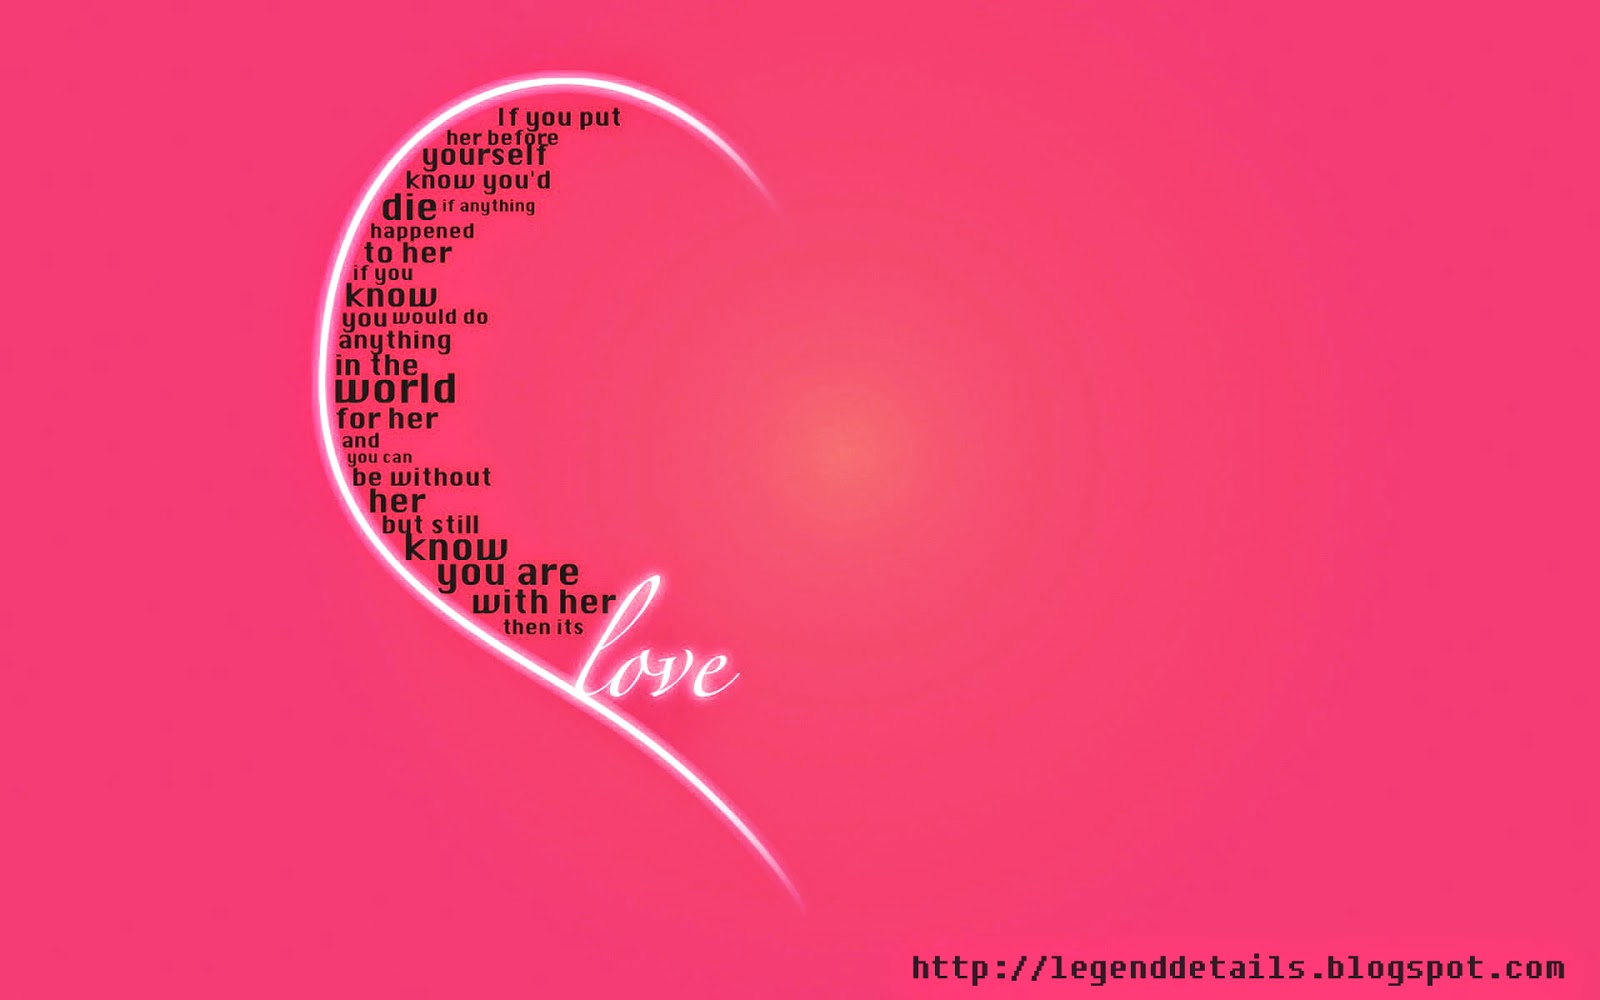 Wallpaper To Express Love : New way to express your Love Legendary Quotes